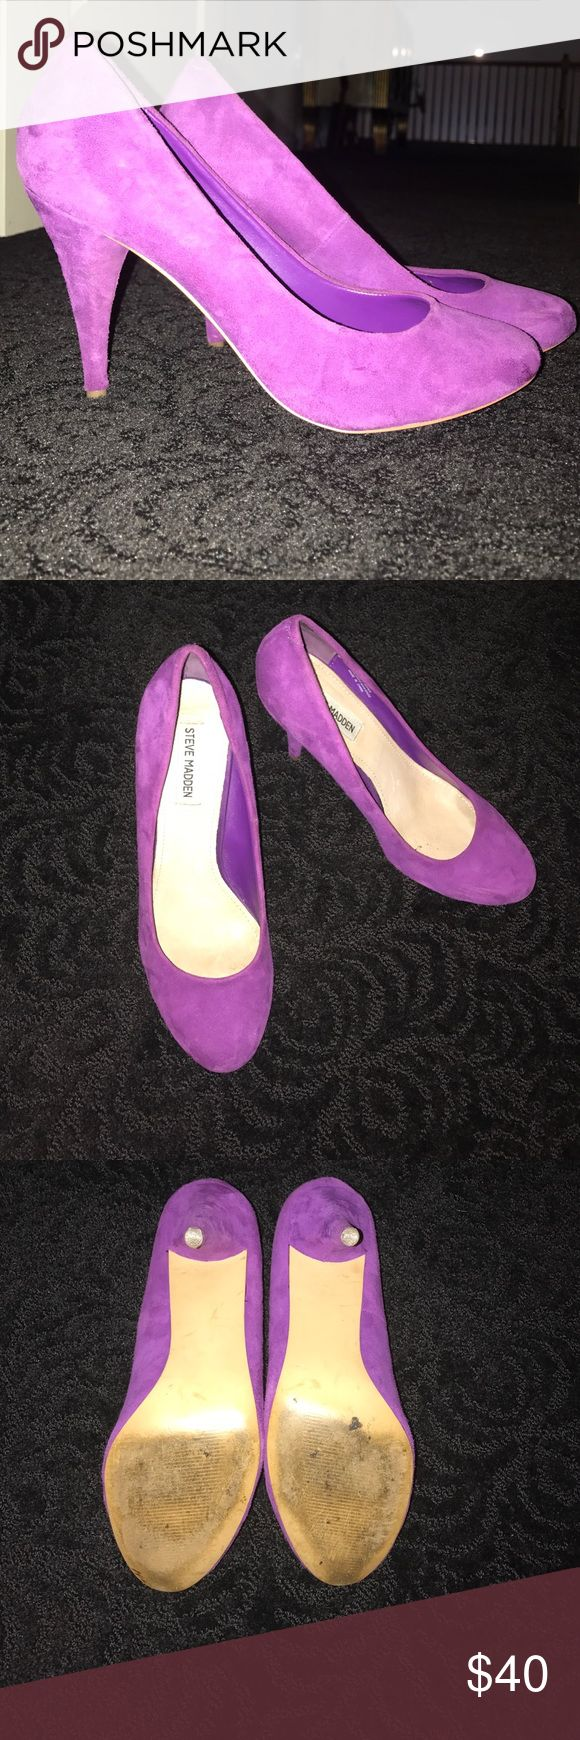 Steve Madden Pumps Purple pumps with 3inch heel. Only worn 1 time. Love the color and style! Style: Unitty Steve Madden Shoes Heels